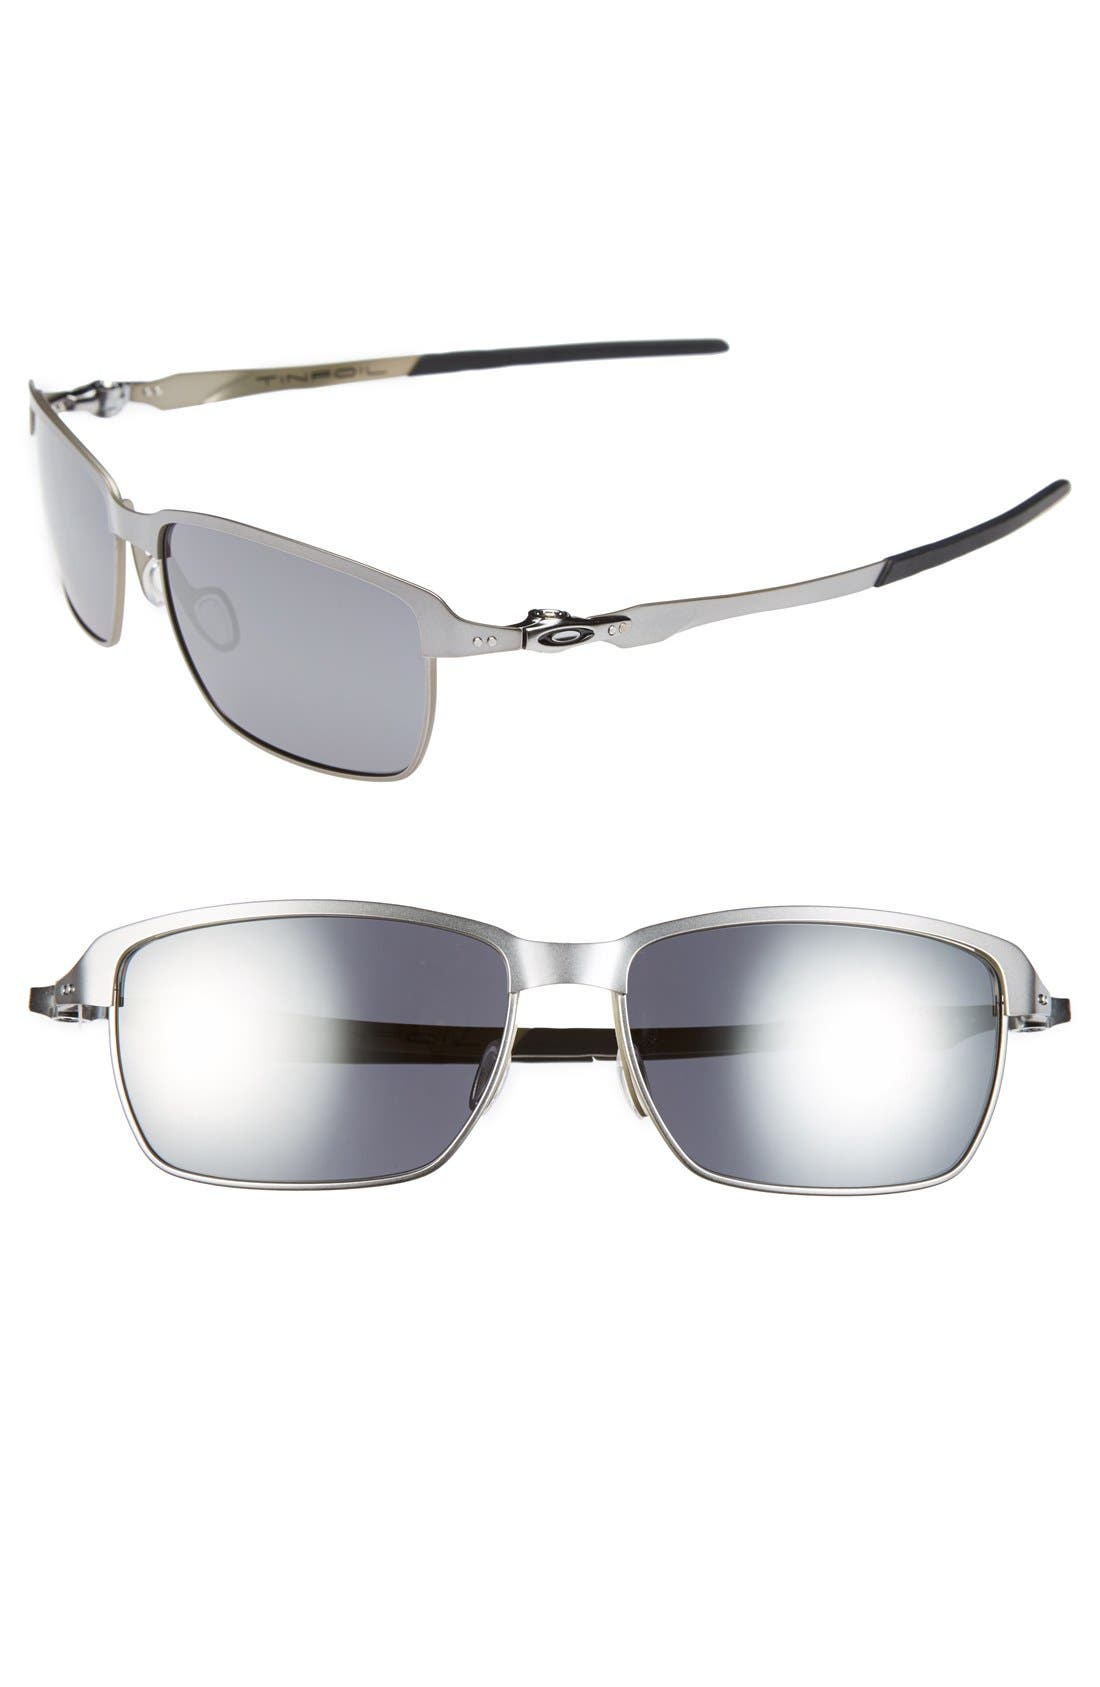 Main Image - Oakley 'Tinfoil' 58mm Sunglasses